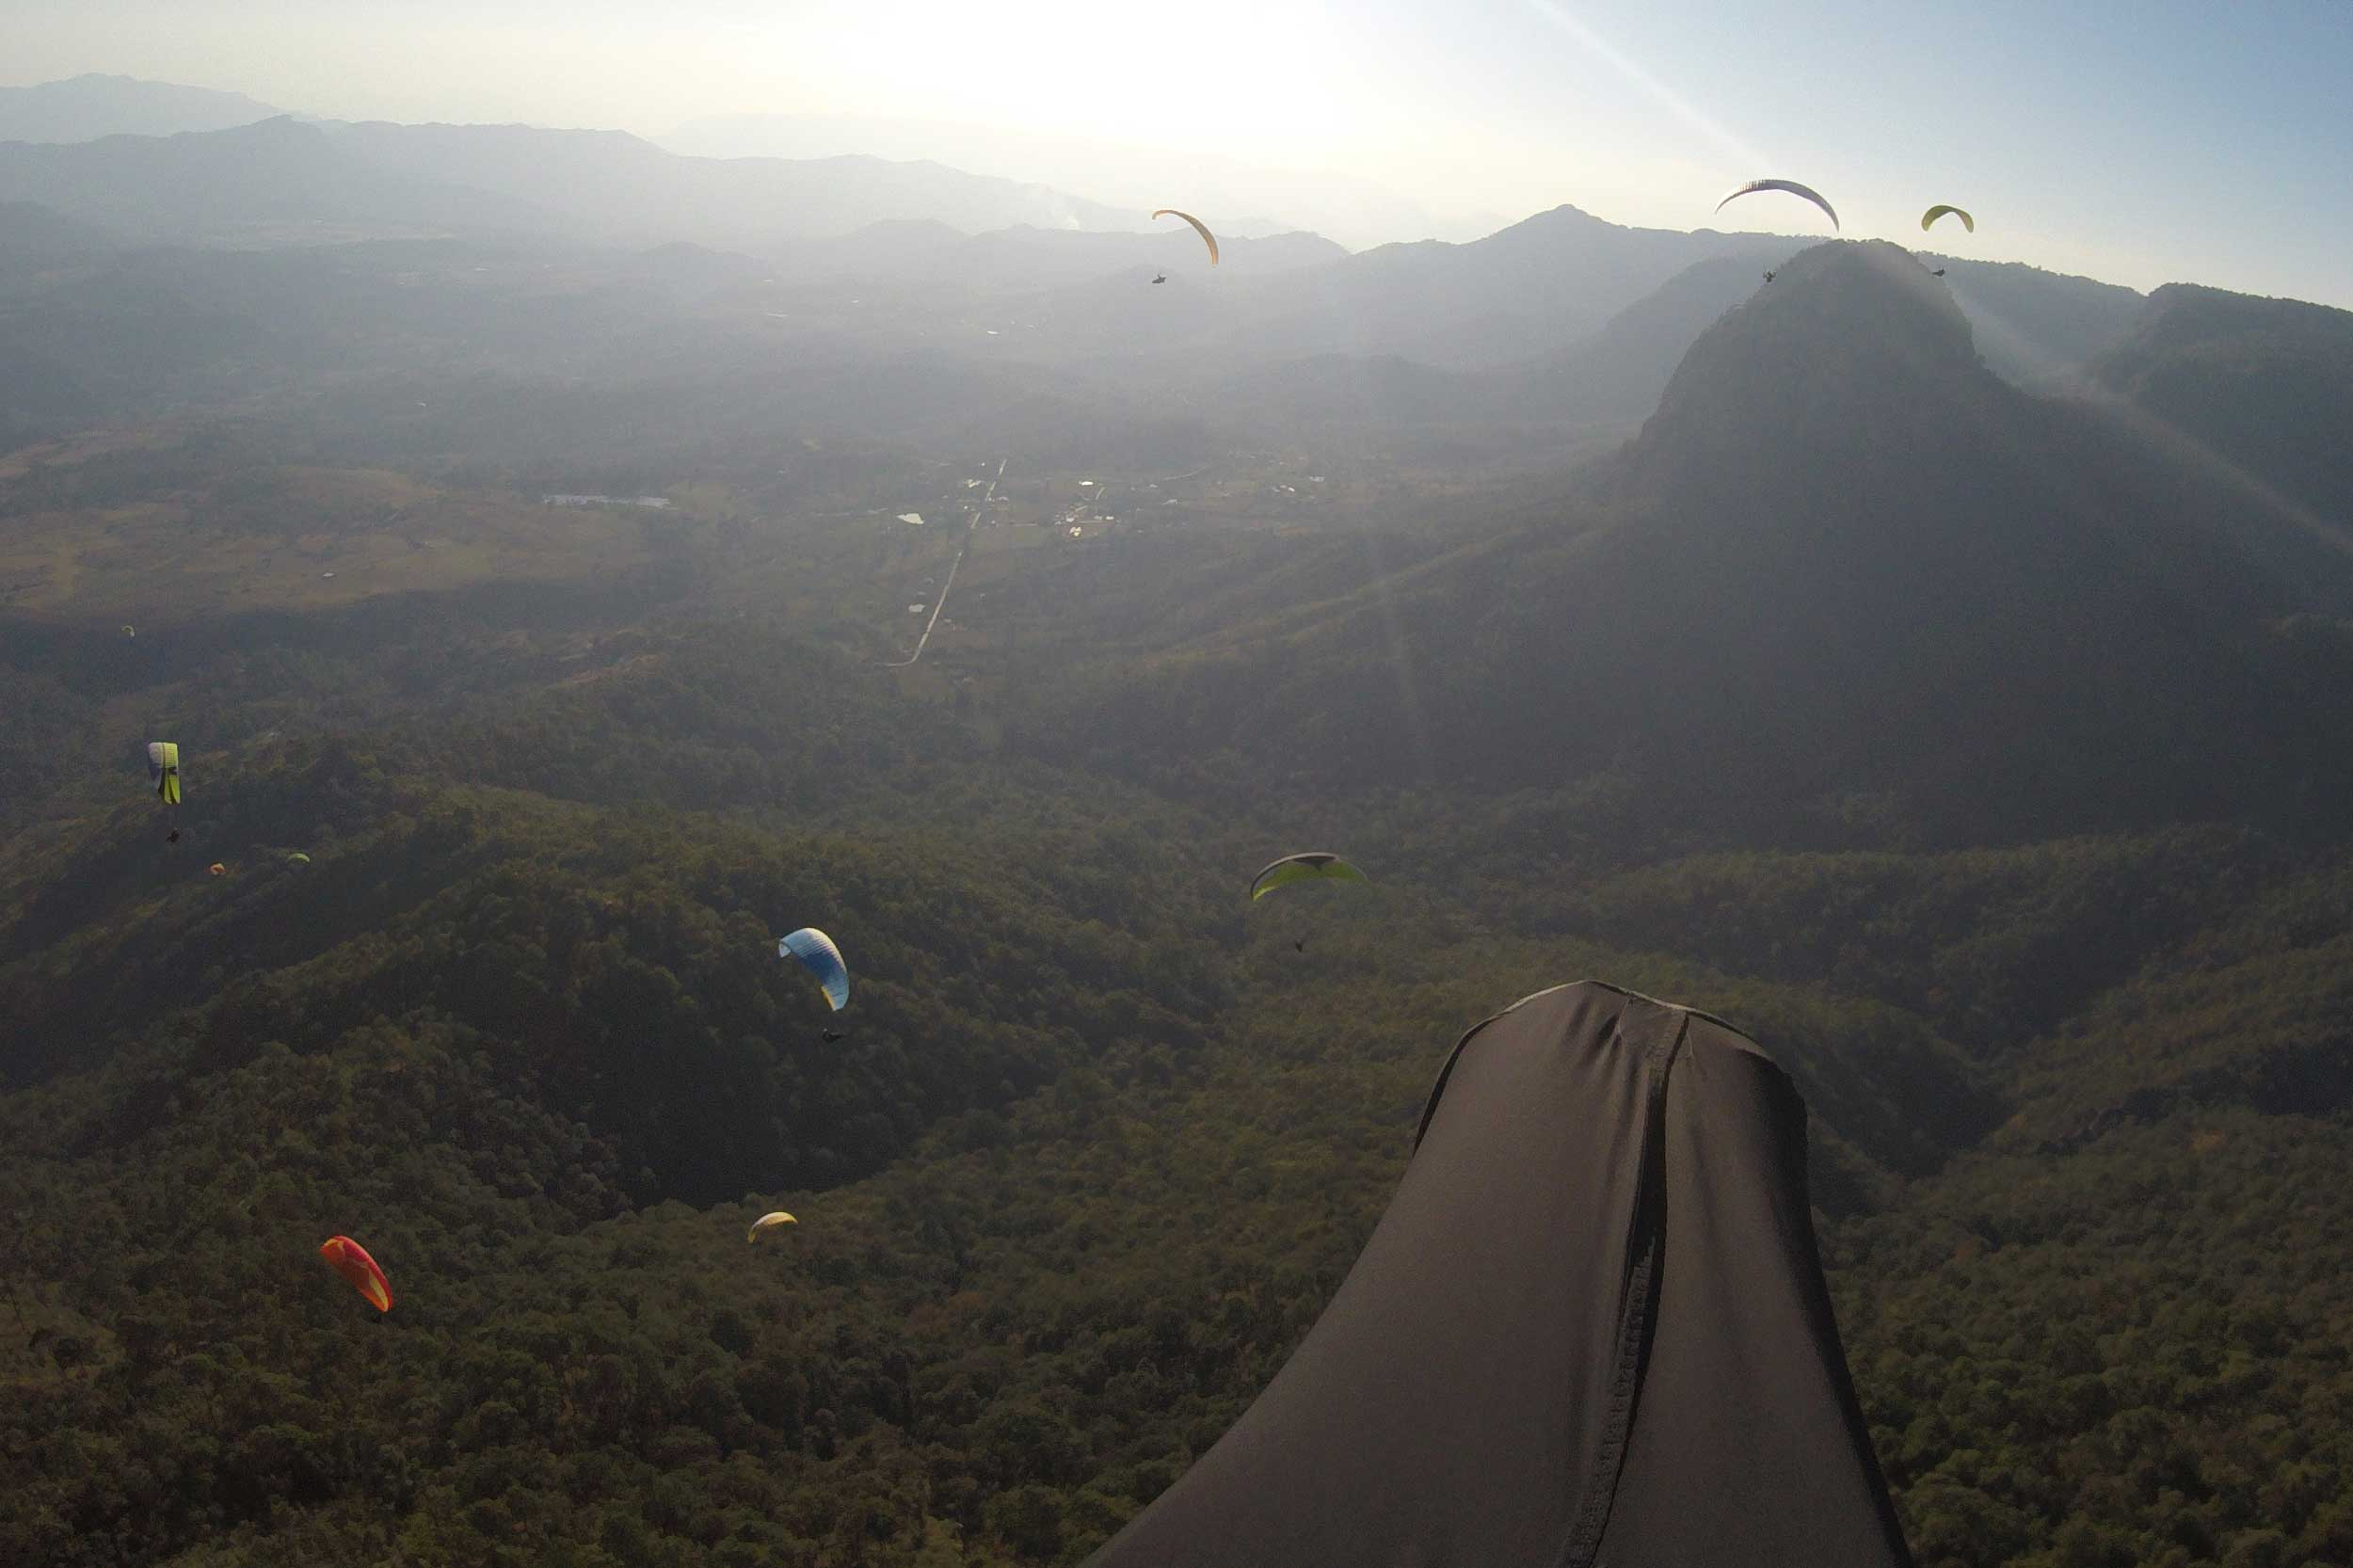 Paraglide-New-England-Trips-Valle-de-Bravo-Mexico-Gallery-Tim-FPV-Piano-View.jpg